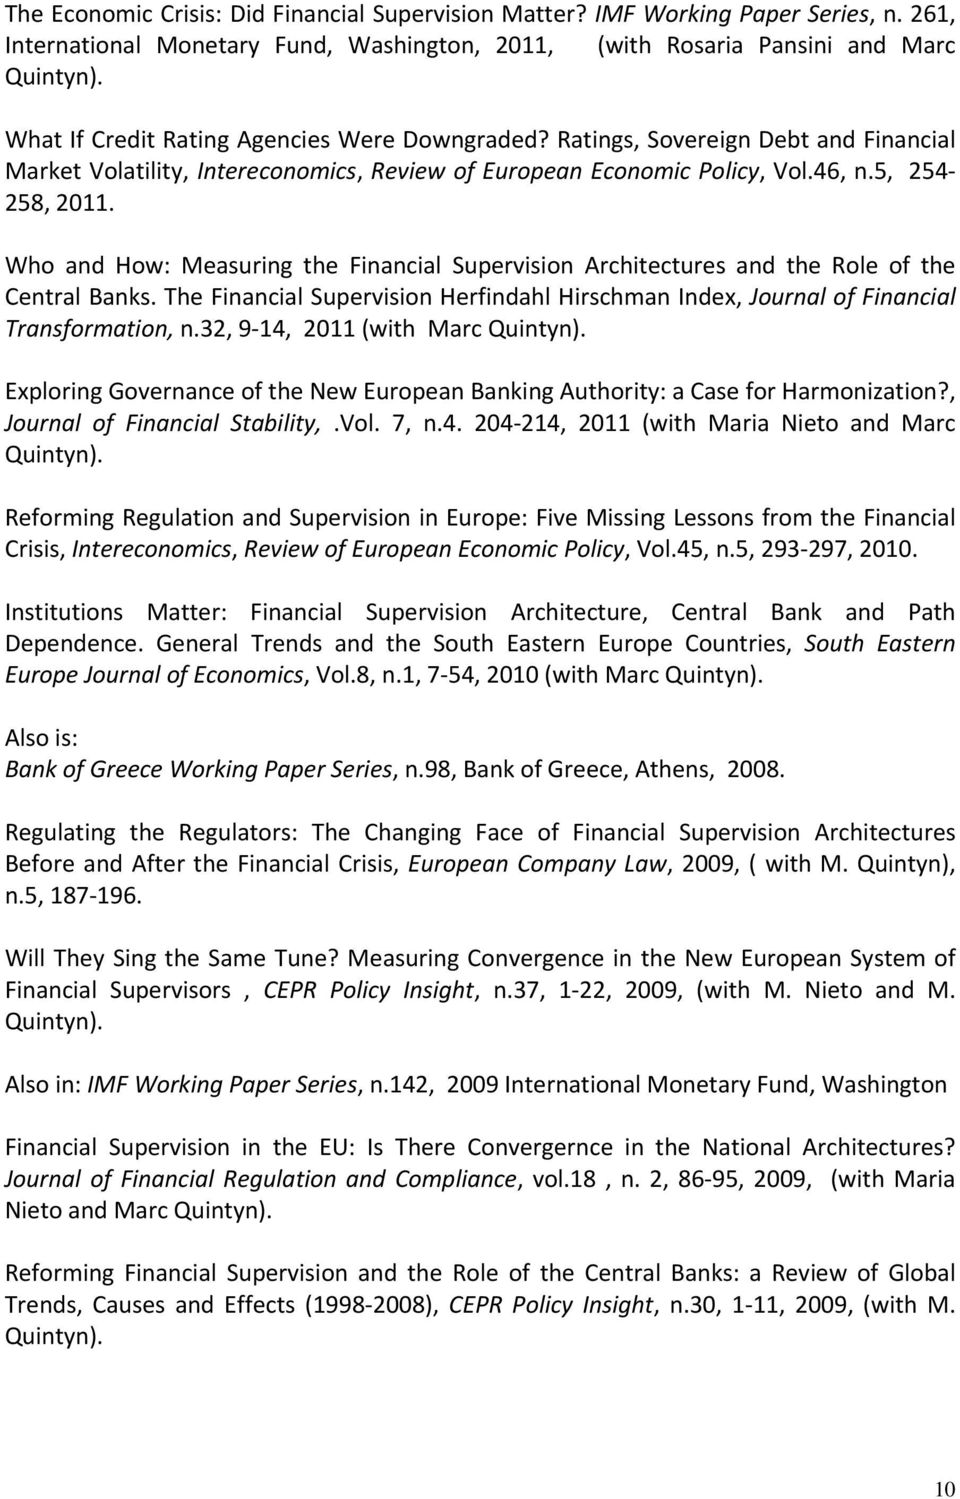 Who and How: Measuring the Financial Supervision Architectures and the Role of the Central Banks. The Financial Supervision Herfindahl Hirschman Index, Journal of Financial Transformation, n.